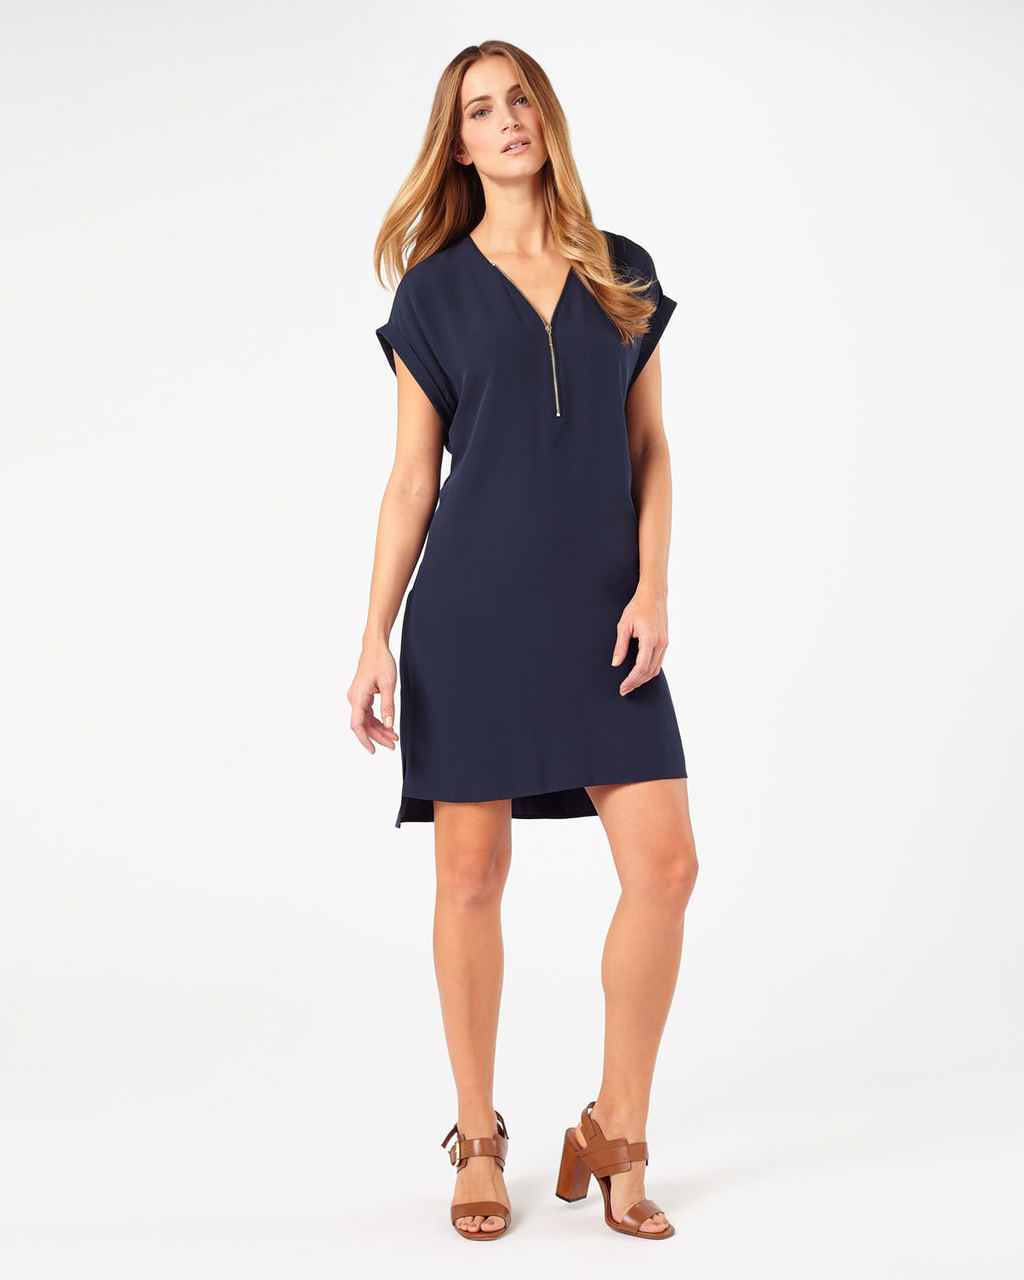 Remi Crepe Dress - style: shift; length: mid thigh; neckline: low v-neck; sleeve style: capped; pattern: plain; predominant colour: navy; occasions: evening, creative work; fit: straight cut; fibres: polyester/polyamide - 100%; sleeve length: short sleeve; texture group: crepes; pattern type: fabric; embellishment: zips; season: s/s 2016; wardrobe: highlight; embellishment location: bust